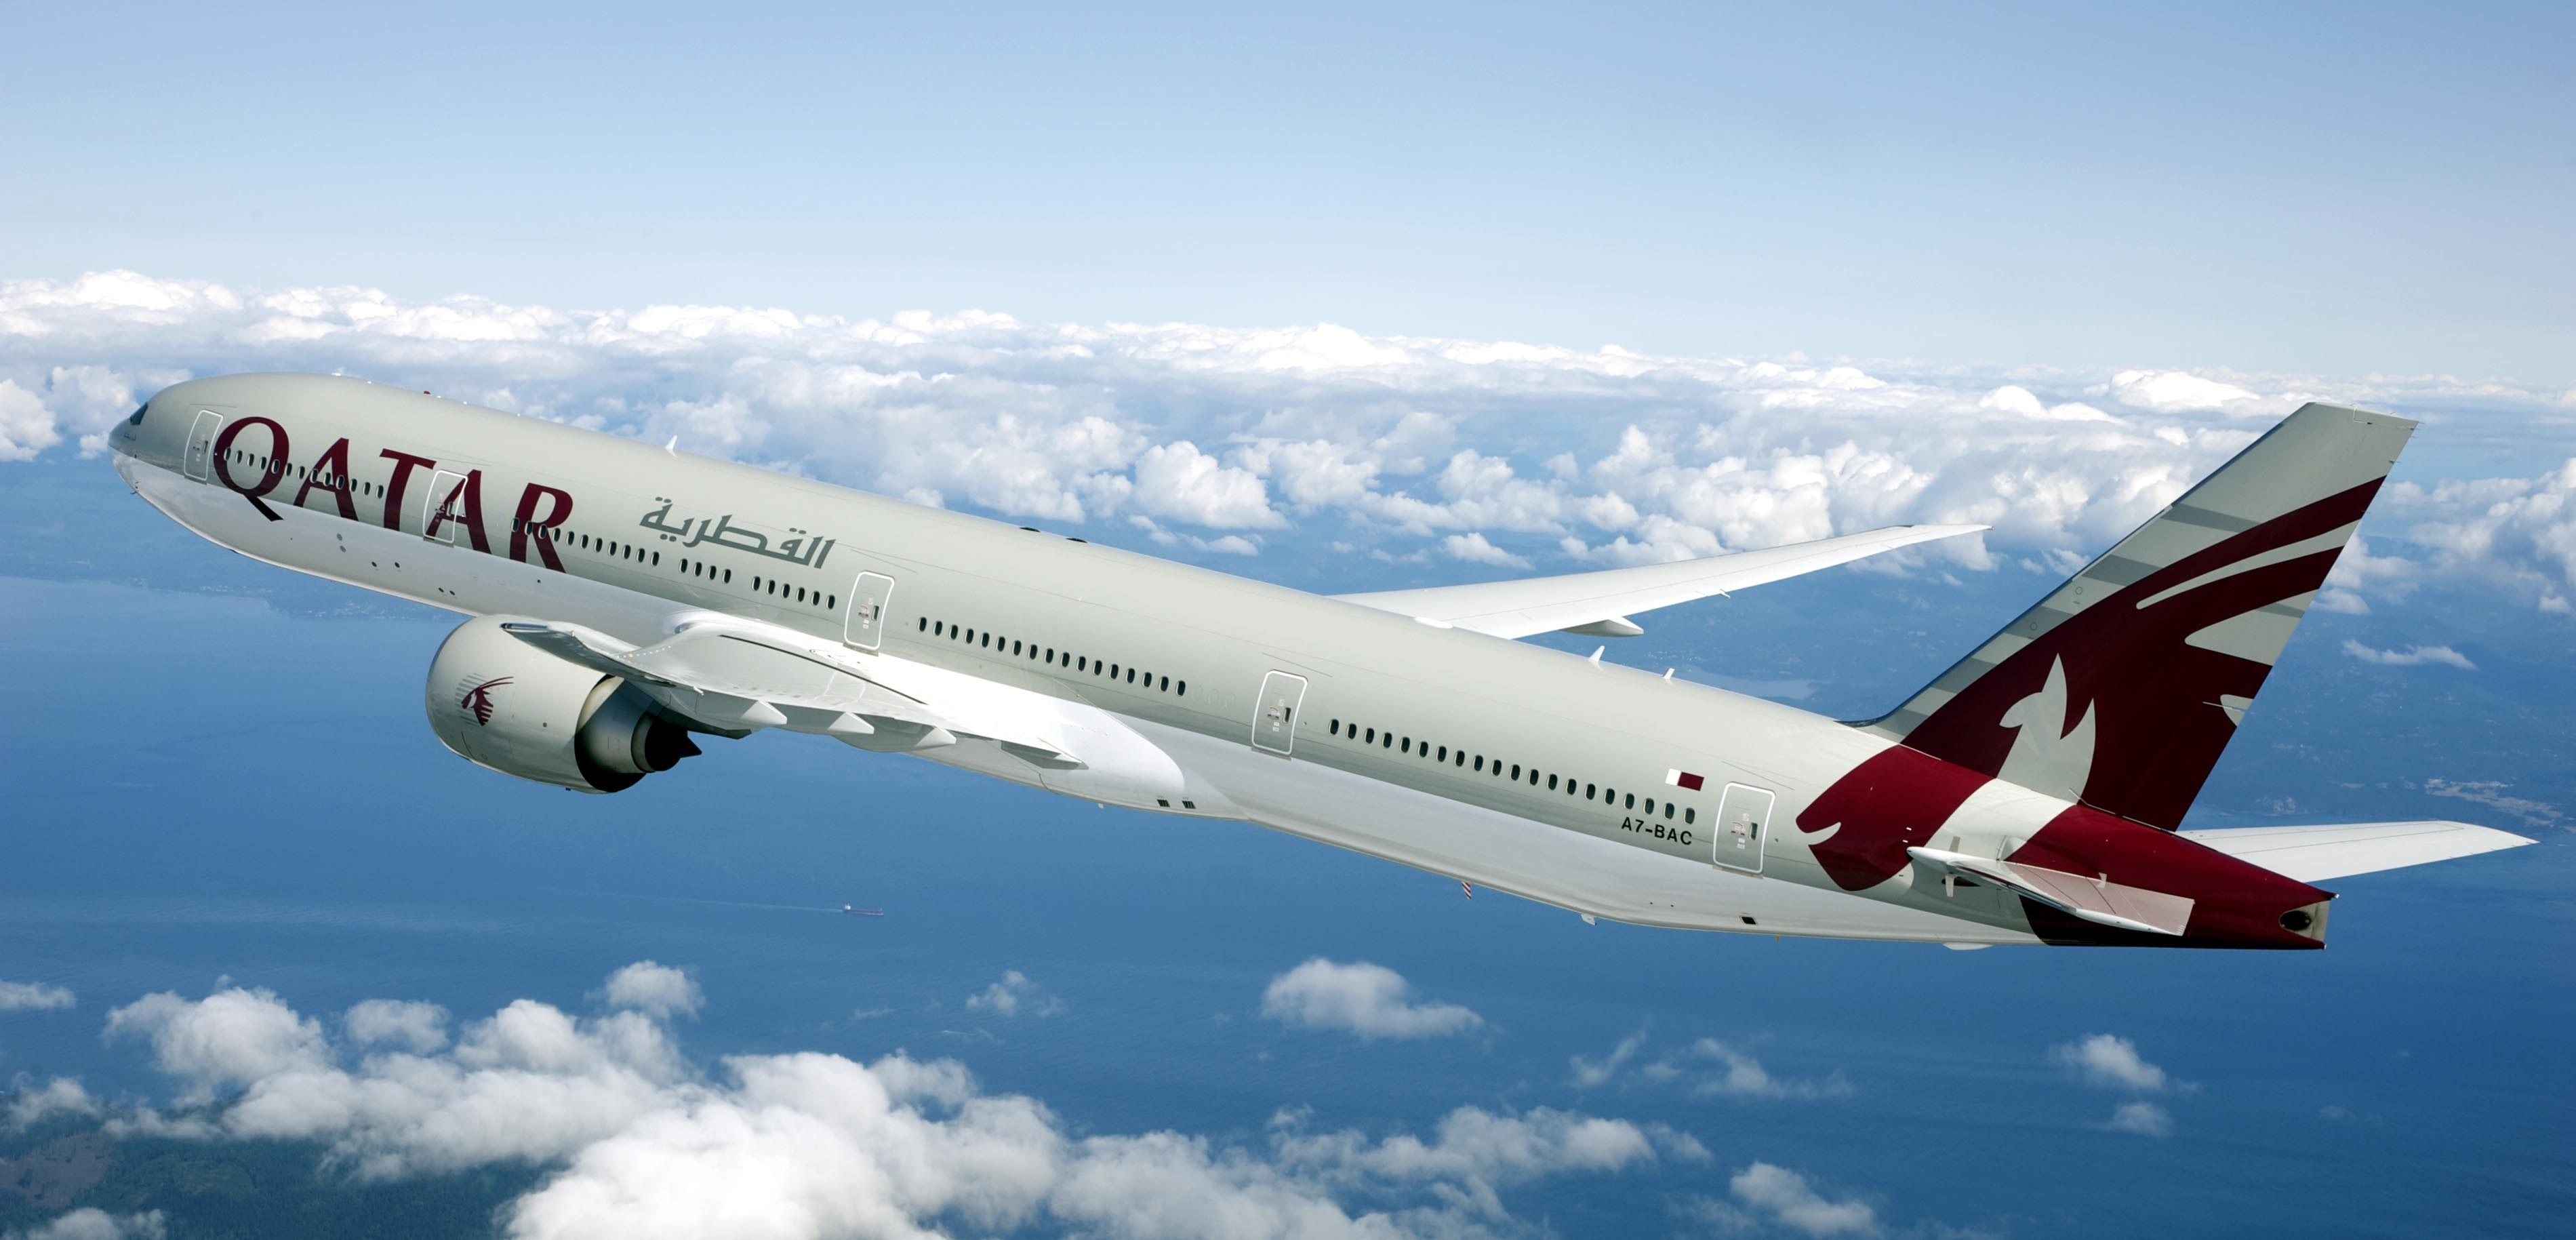 qatar airways (Qatar Airports)